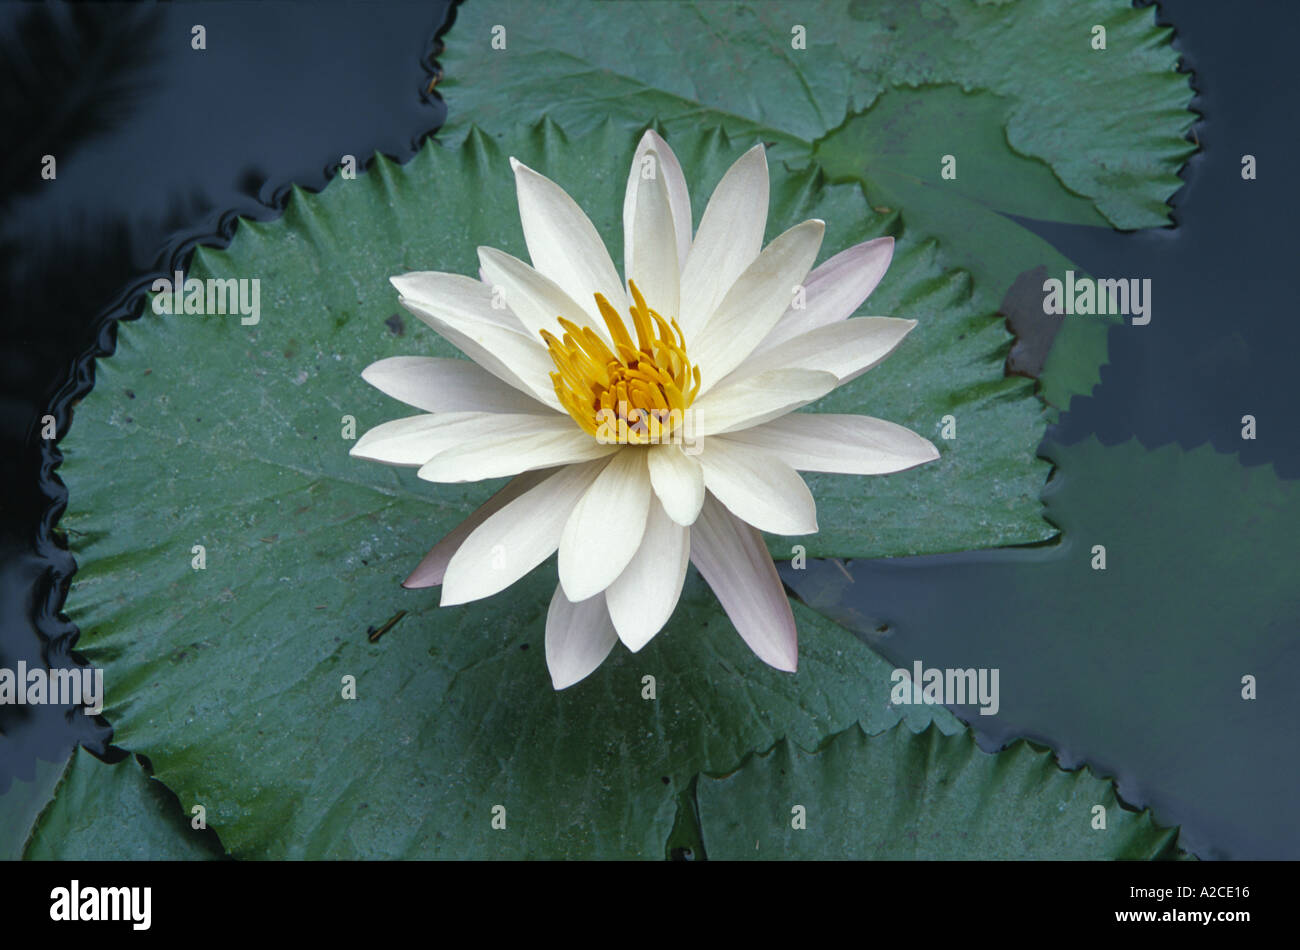 About Lotus Flower In Hindi Flower Shop Near Me Flower Shop